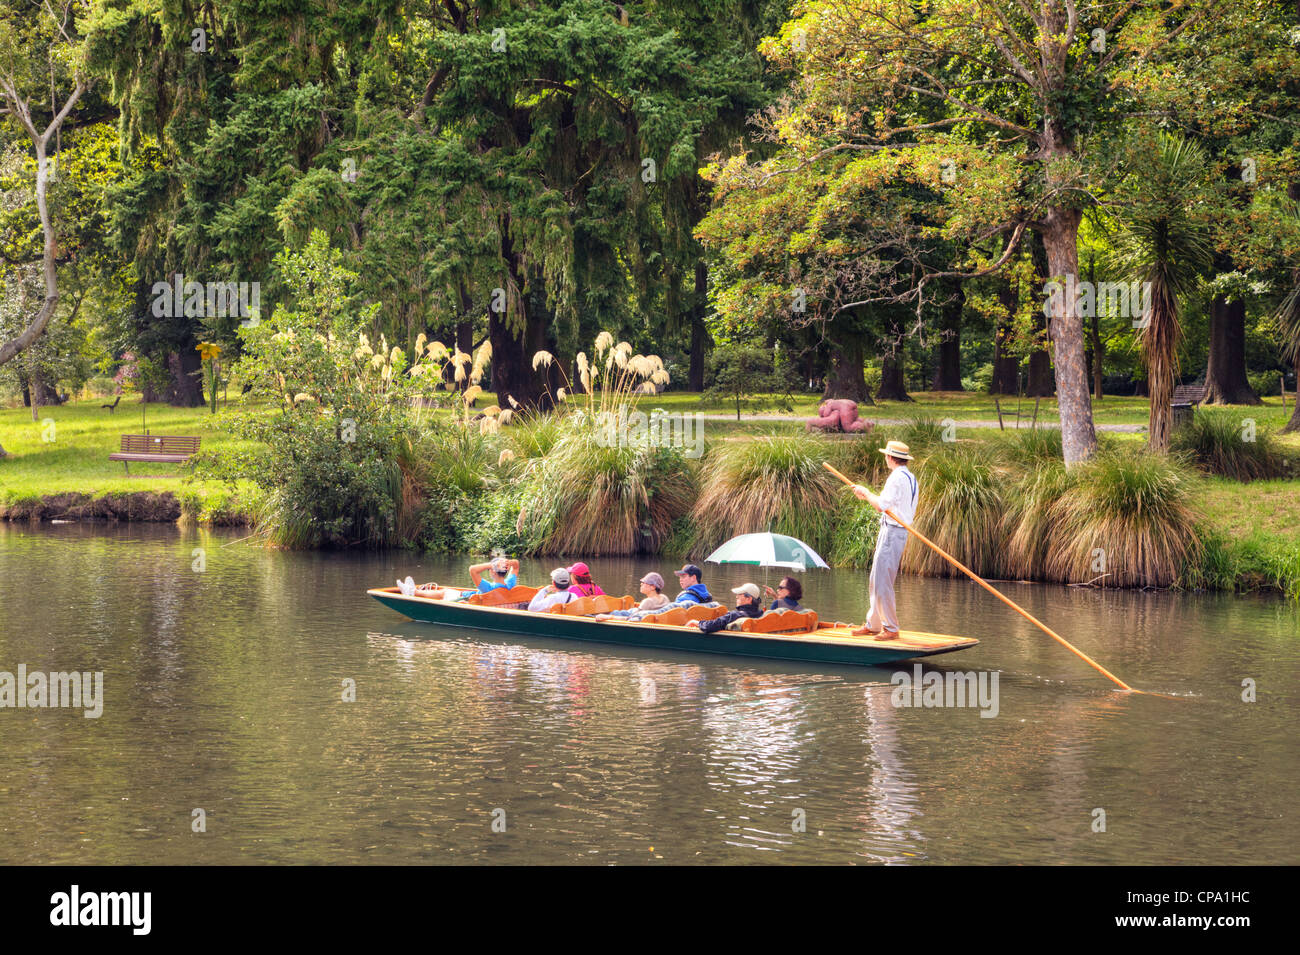 Tourists in a punt on the Avon River, passing through Hagley Park, in Christchurch, New Zealand, 6 February 2011. - Stock Image